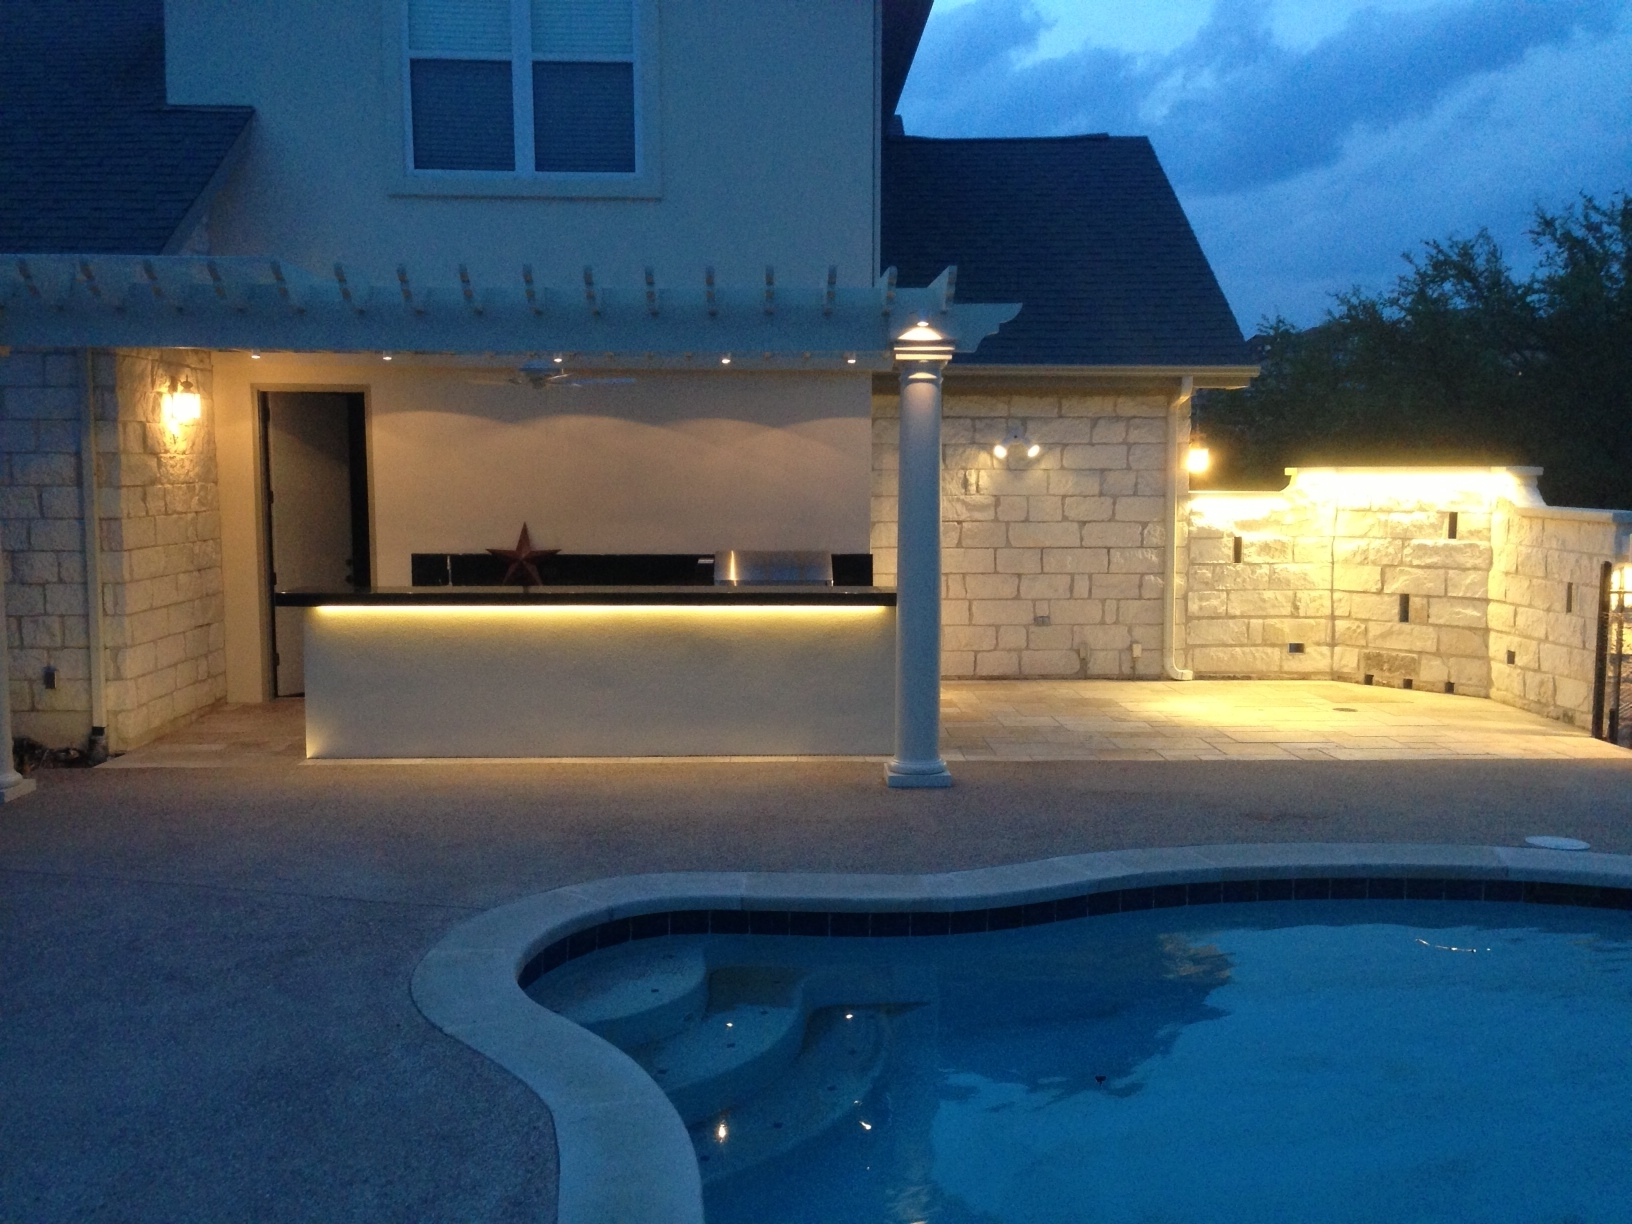 Residential Outdoor Wall Lighting With Widely Used Patio Wall Lights, Michigan Landscape Lighting Outdoor Lighting (View 8 of 20)